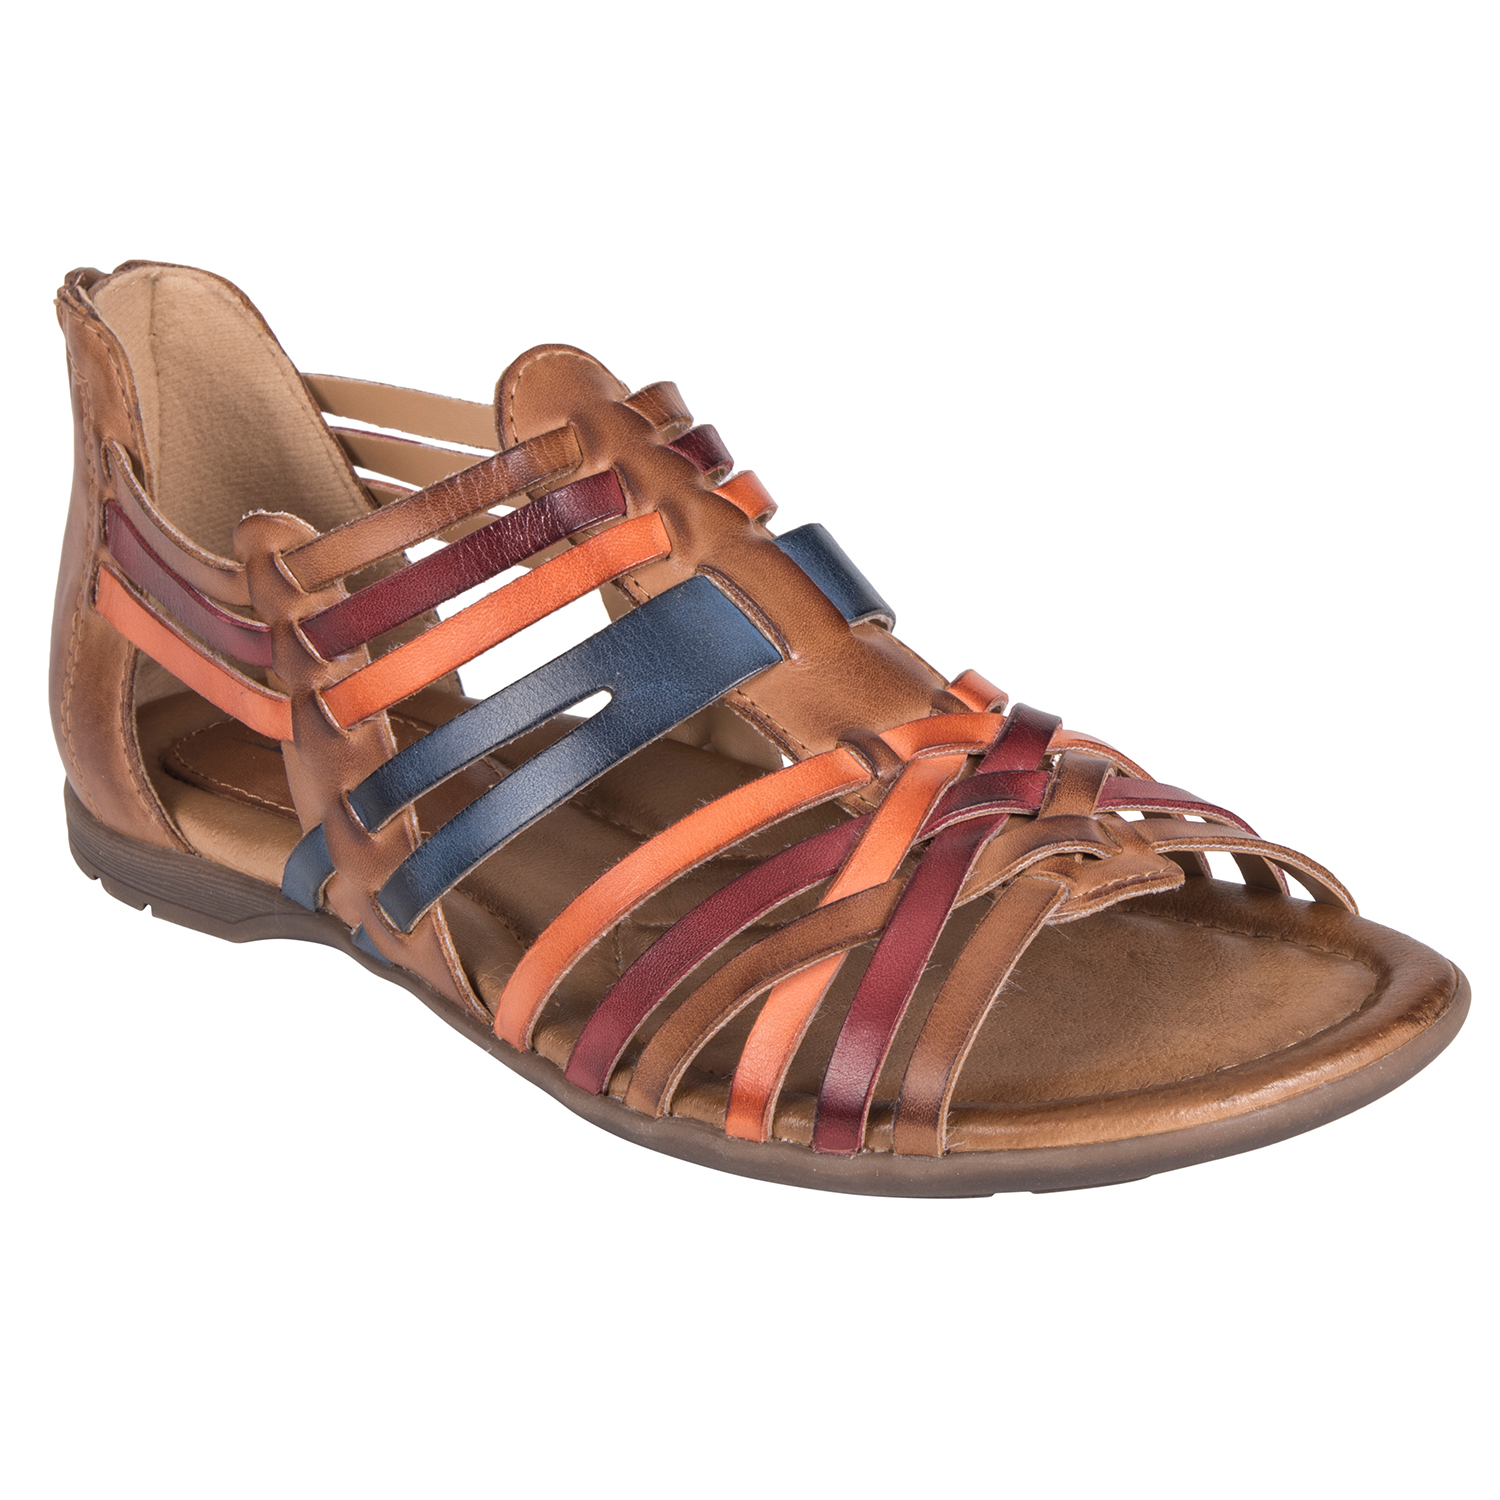 2fb9157acb04 EARTH Bonfire Leather Sandal - Brown Multi - Rudolph s Shoe Mart